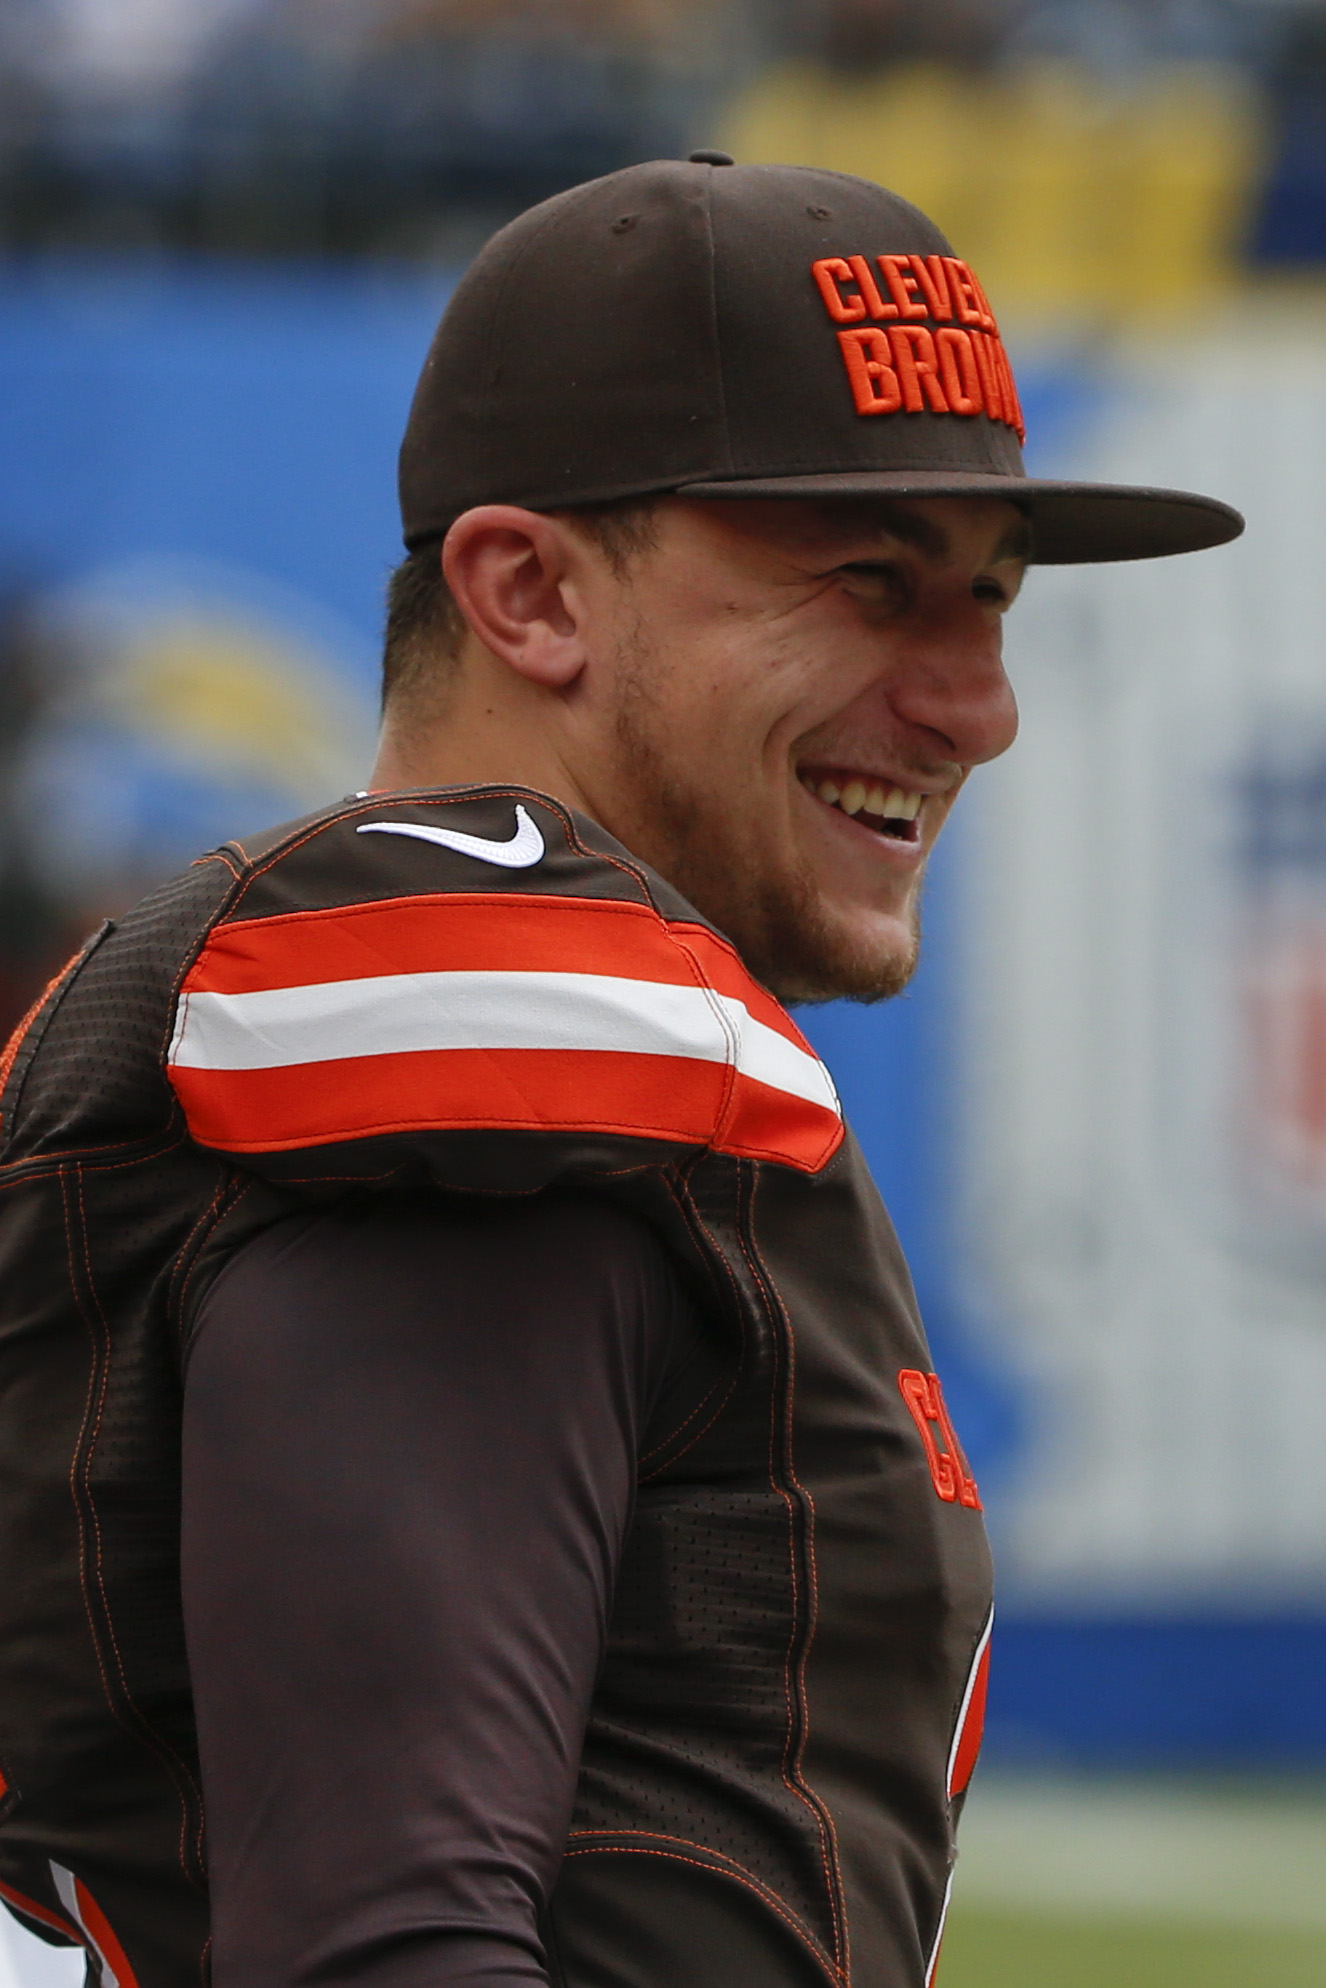 Cleveland Browns quarterback Johnny Manziel looks on from the sidelines as the Browns play the San Diego Chargers during the first half in an NFL football game Sunday, Oct. 4, 2015, in San Diego. (AP Photo/Lenny Ignelzi)